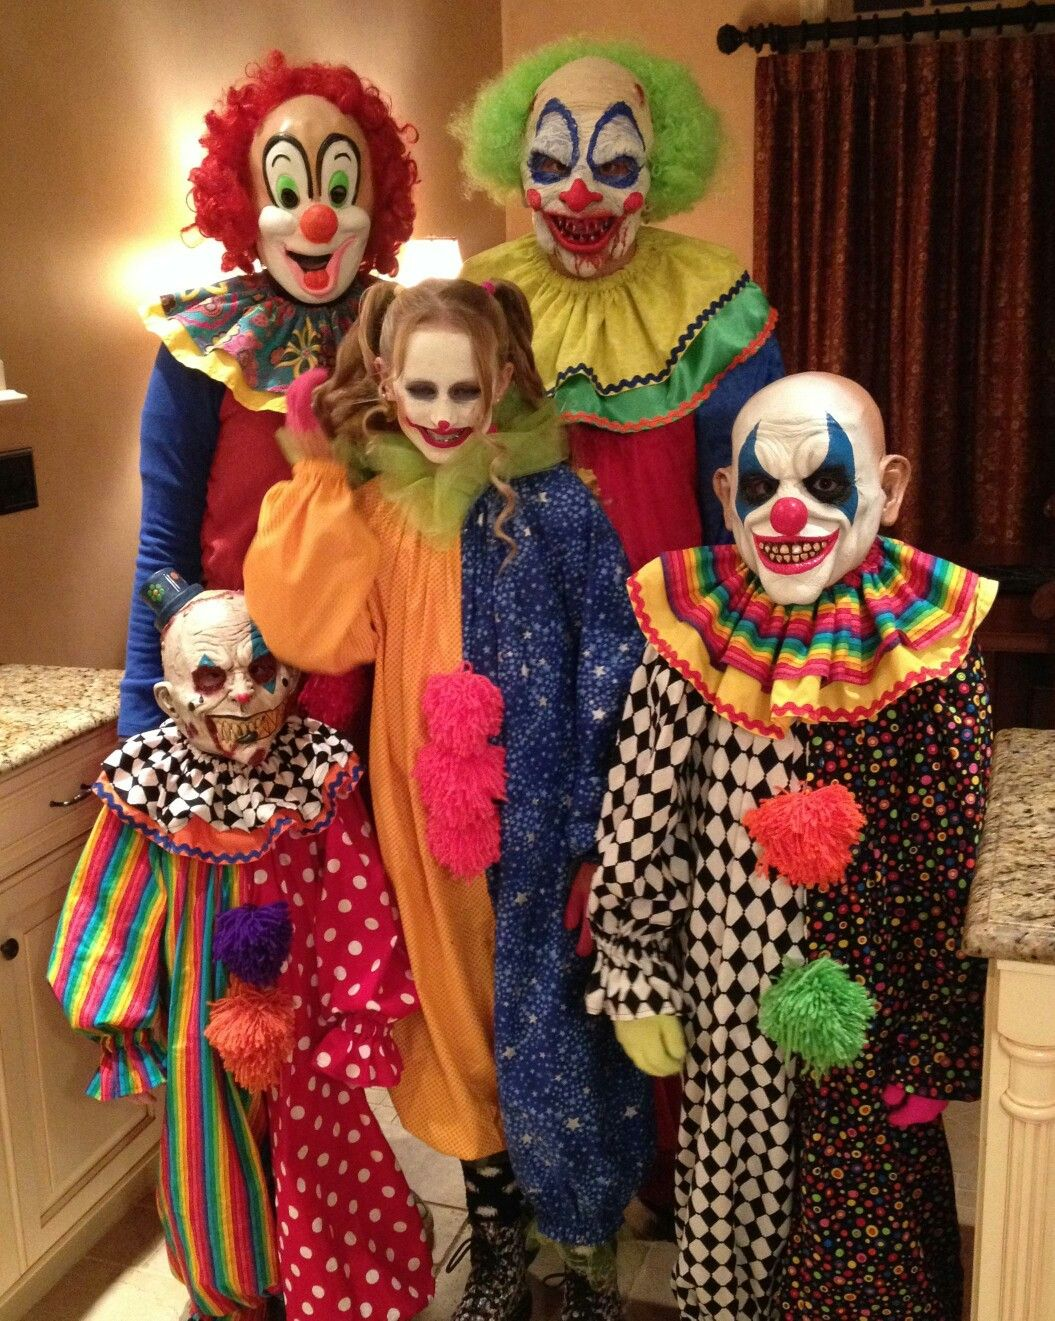 Family Of Clowns Clown Halloween Costumes Scary Halloween